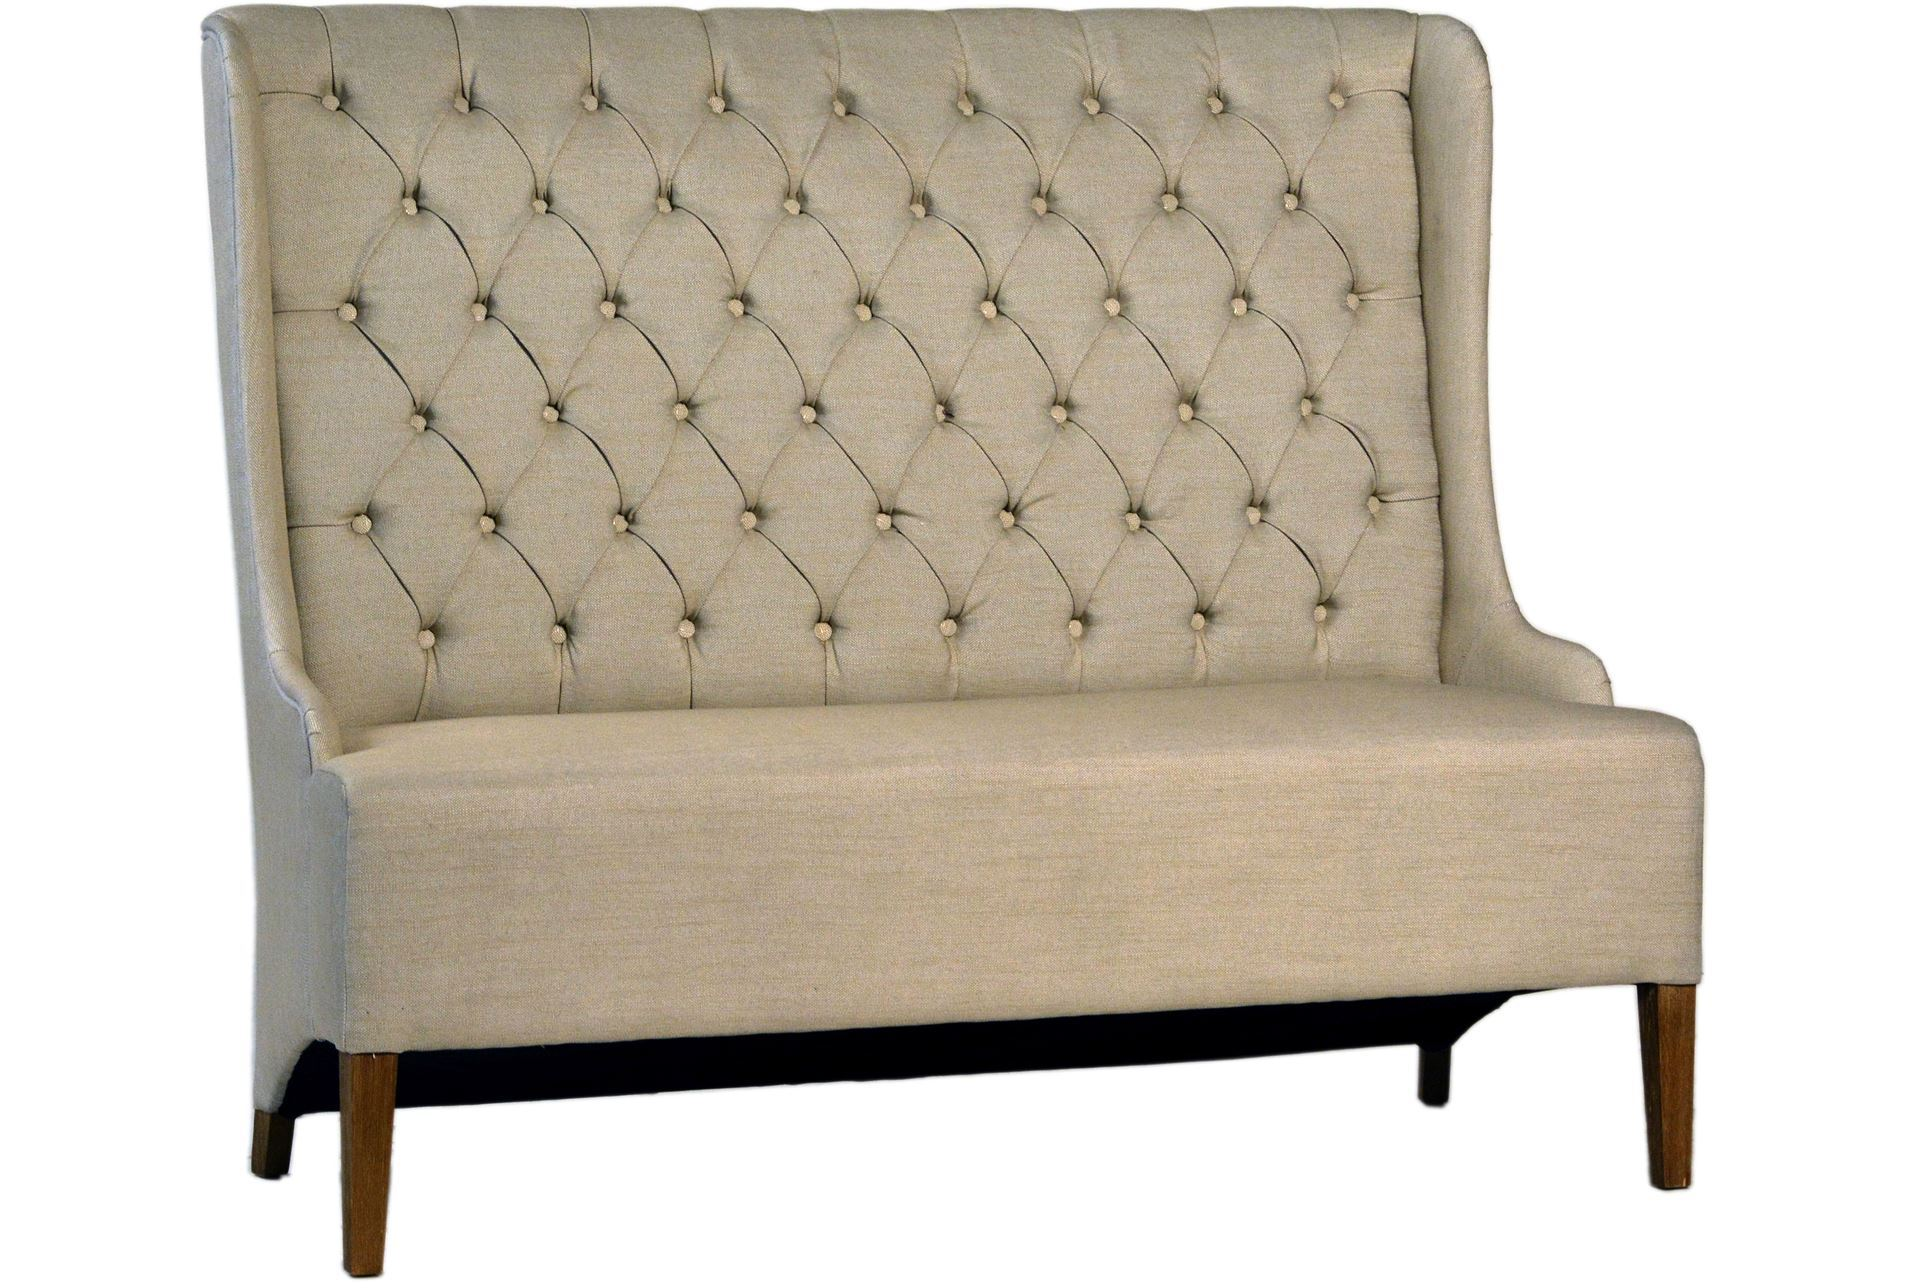 Otb Upholstered Tufted Back Dining Bench Living Spaces